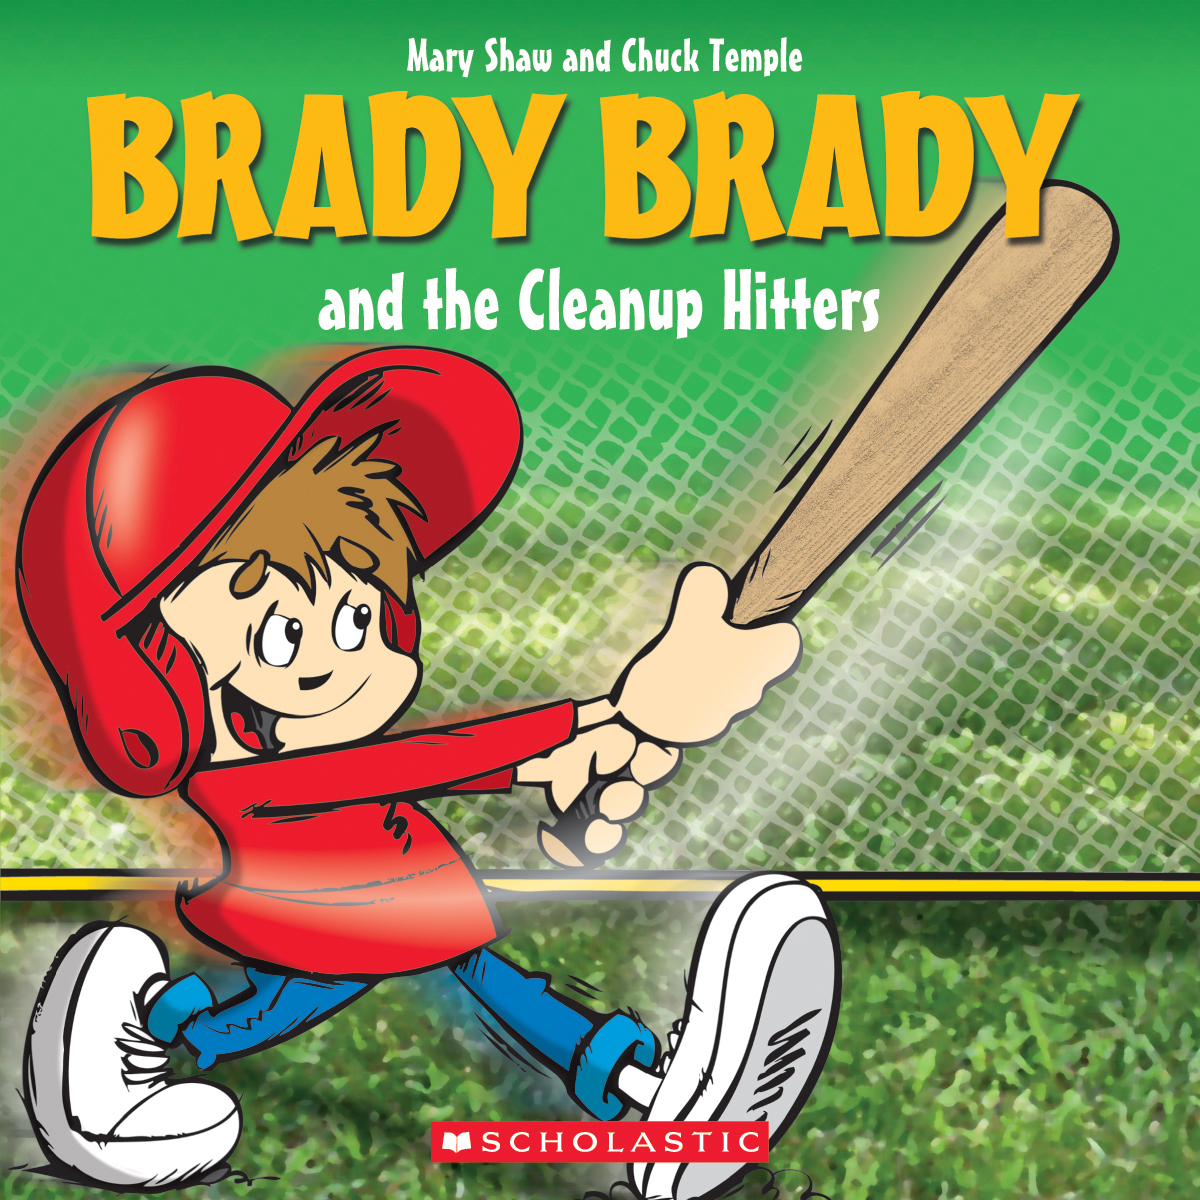 Brady Brady and the Cleanup Hitters (Brady Brady) | Picture books